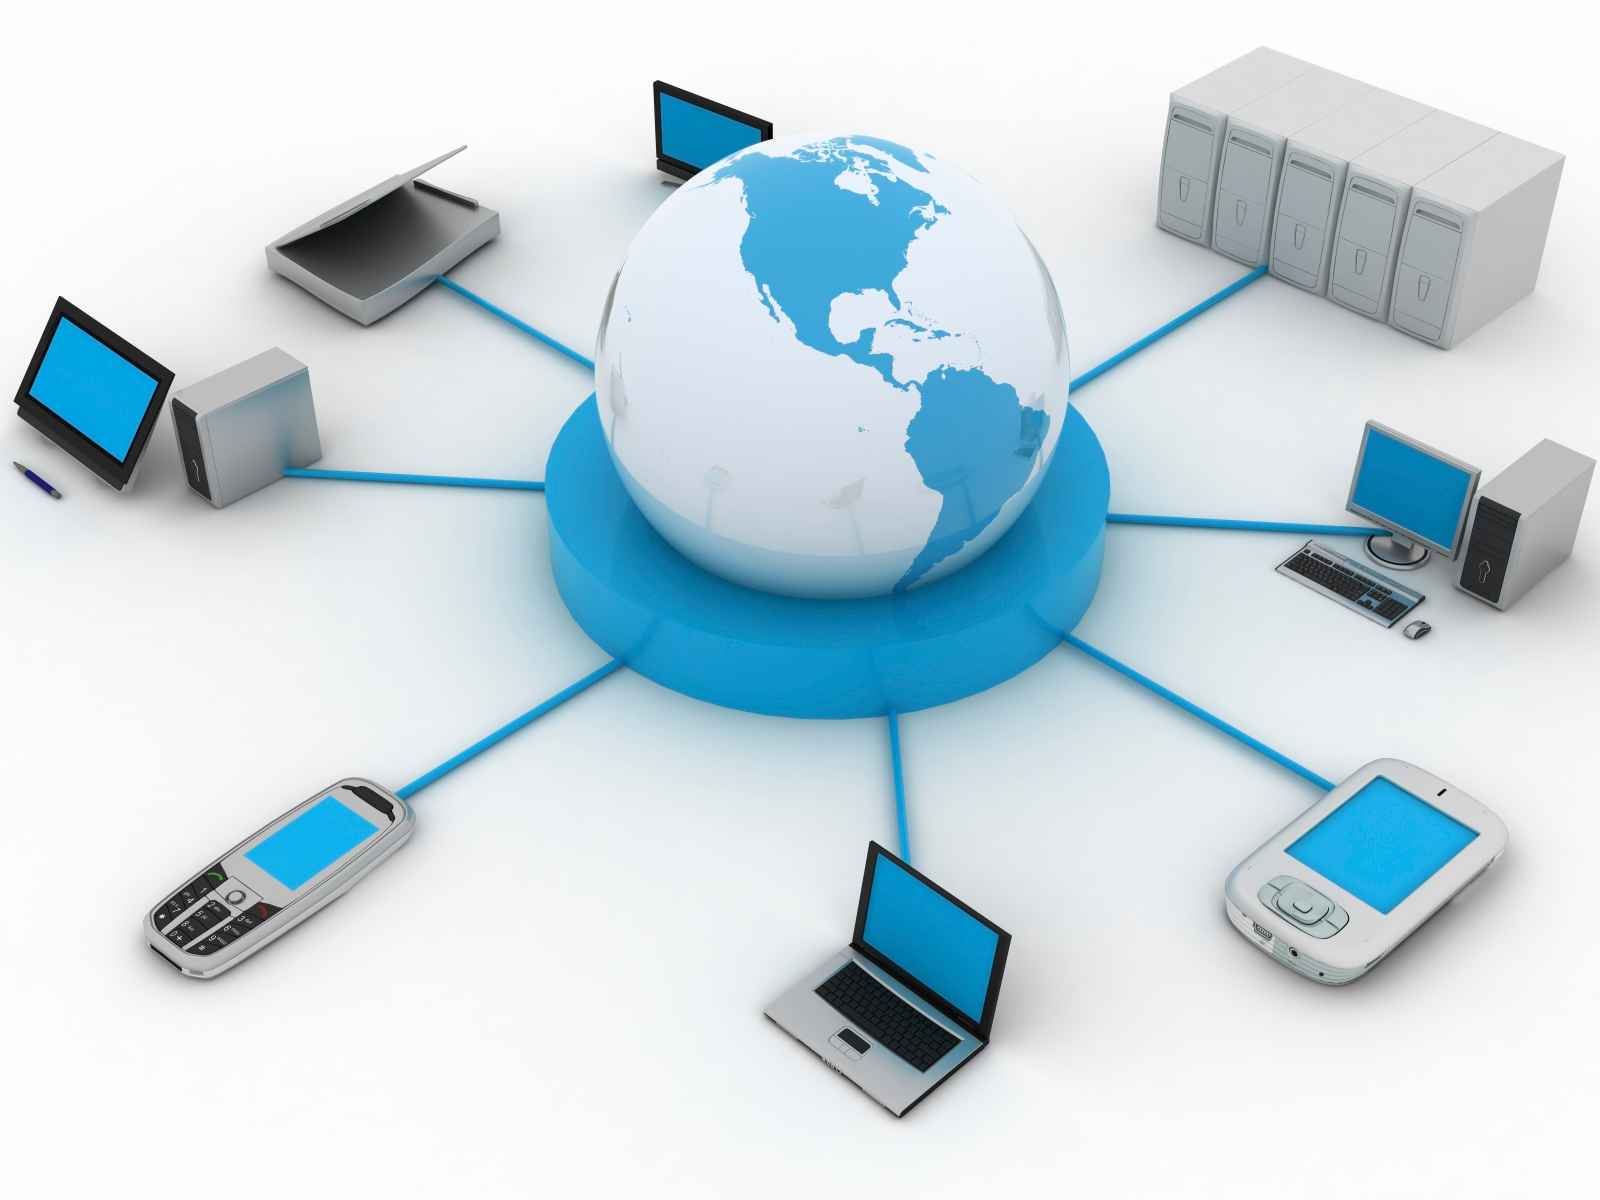 wired and wireless data communication infrastructure